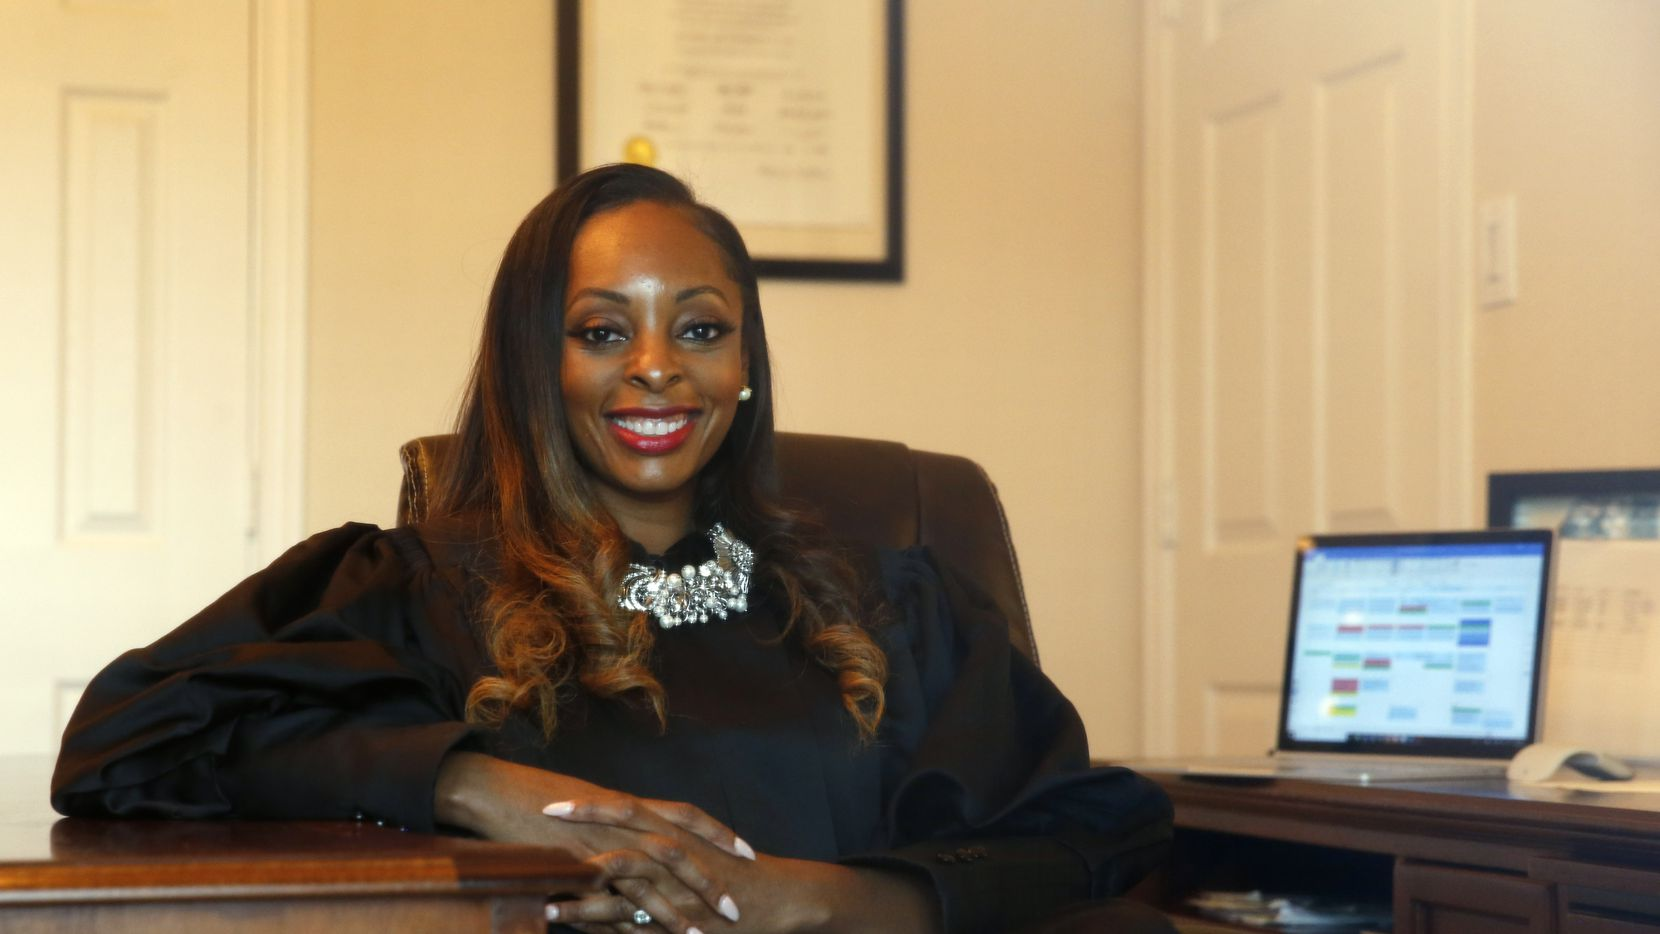 Judge Shequitta Kelly, a misdemeanor court judge poses for a portrait where she works from home amid the coronavirus pandemic, on Thursday, April 9, 2020.